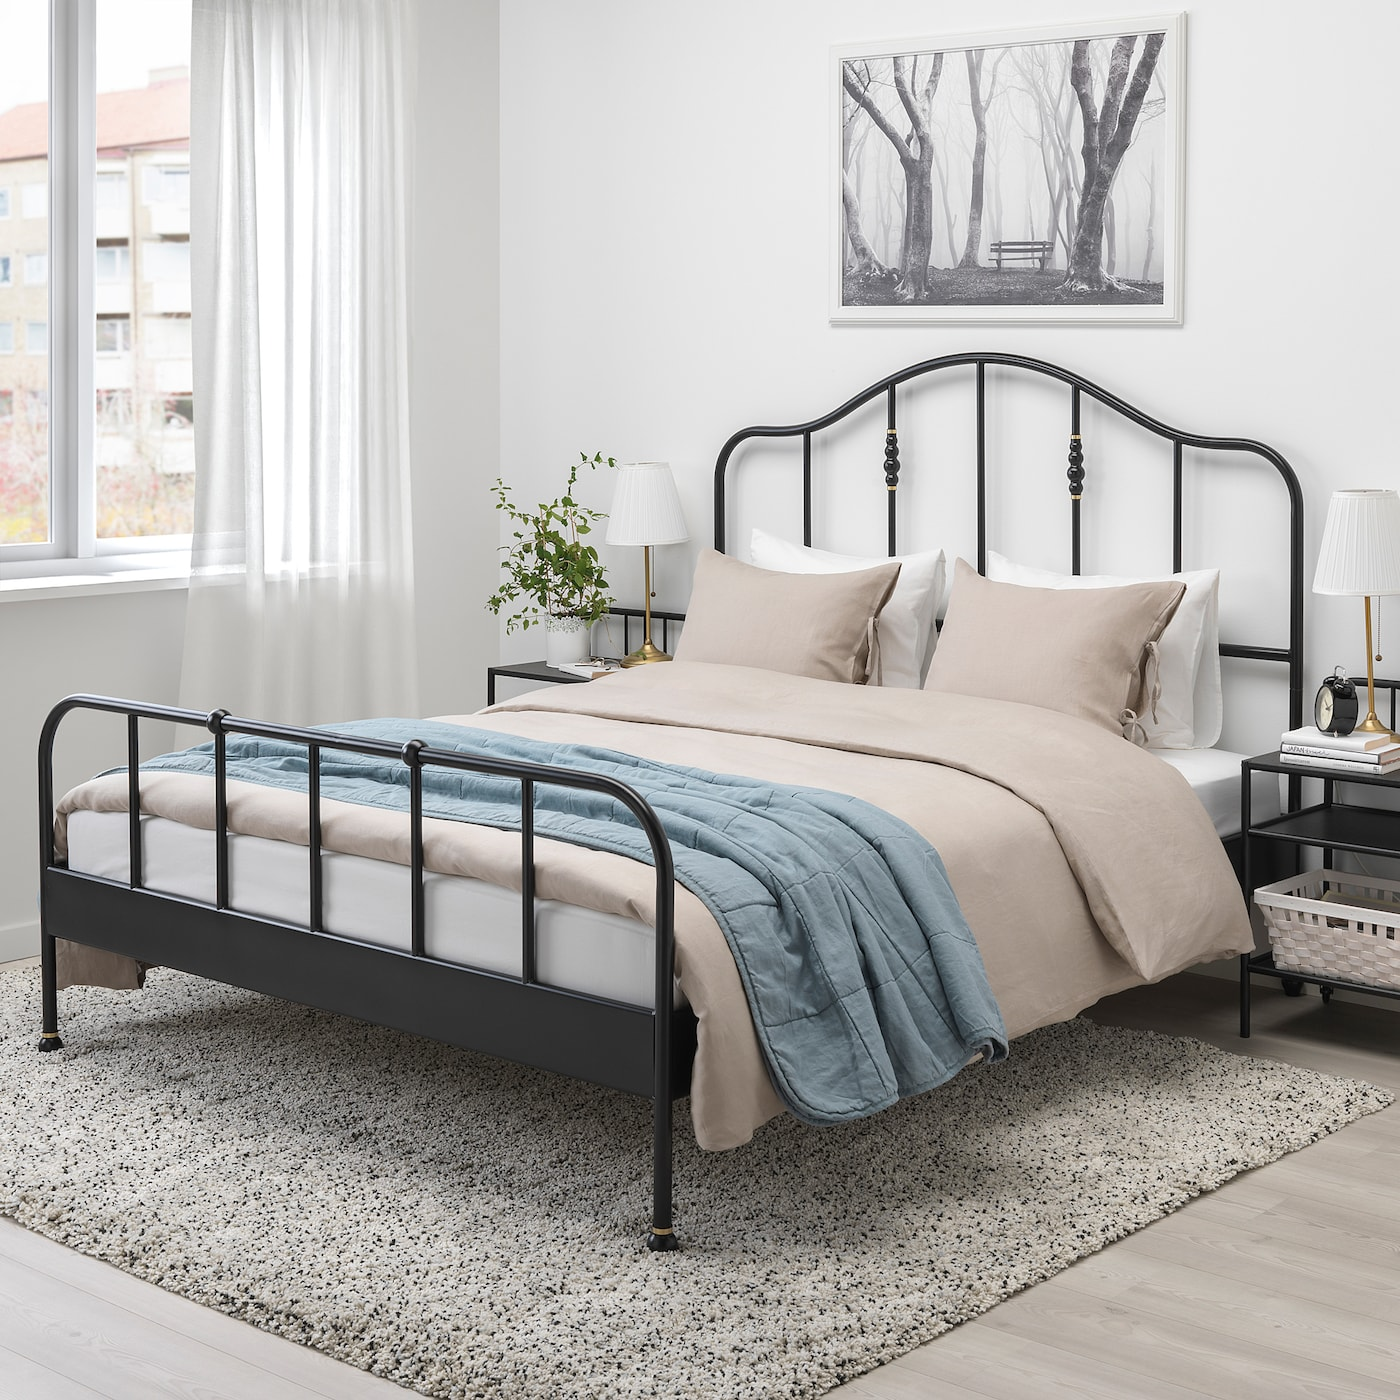 Sagstua Bed Frame Black Ikea